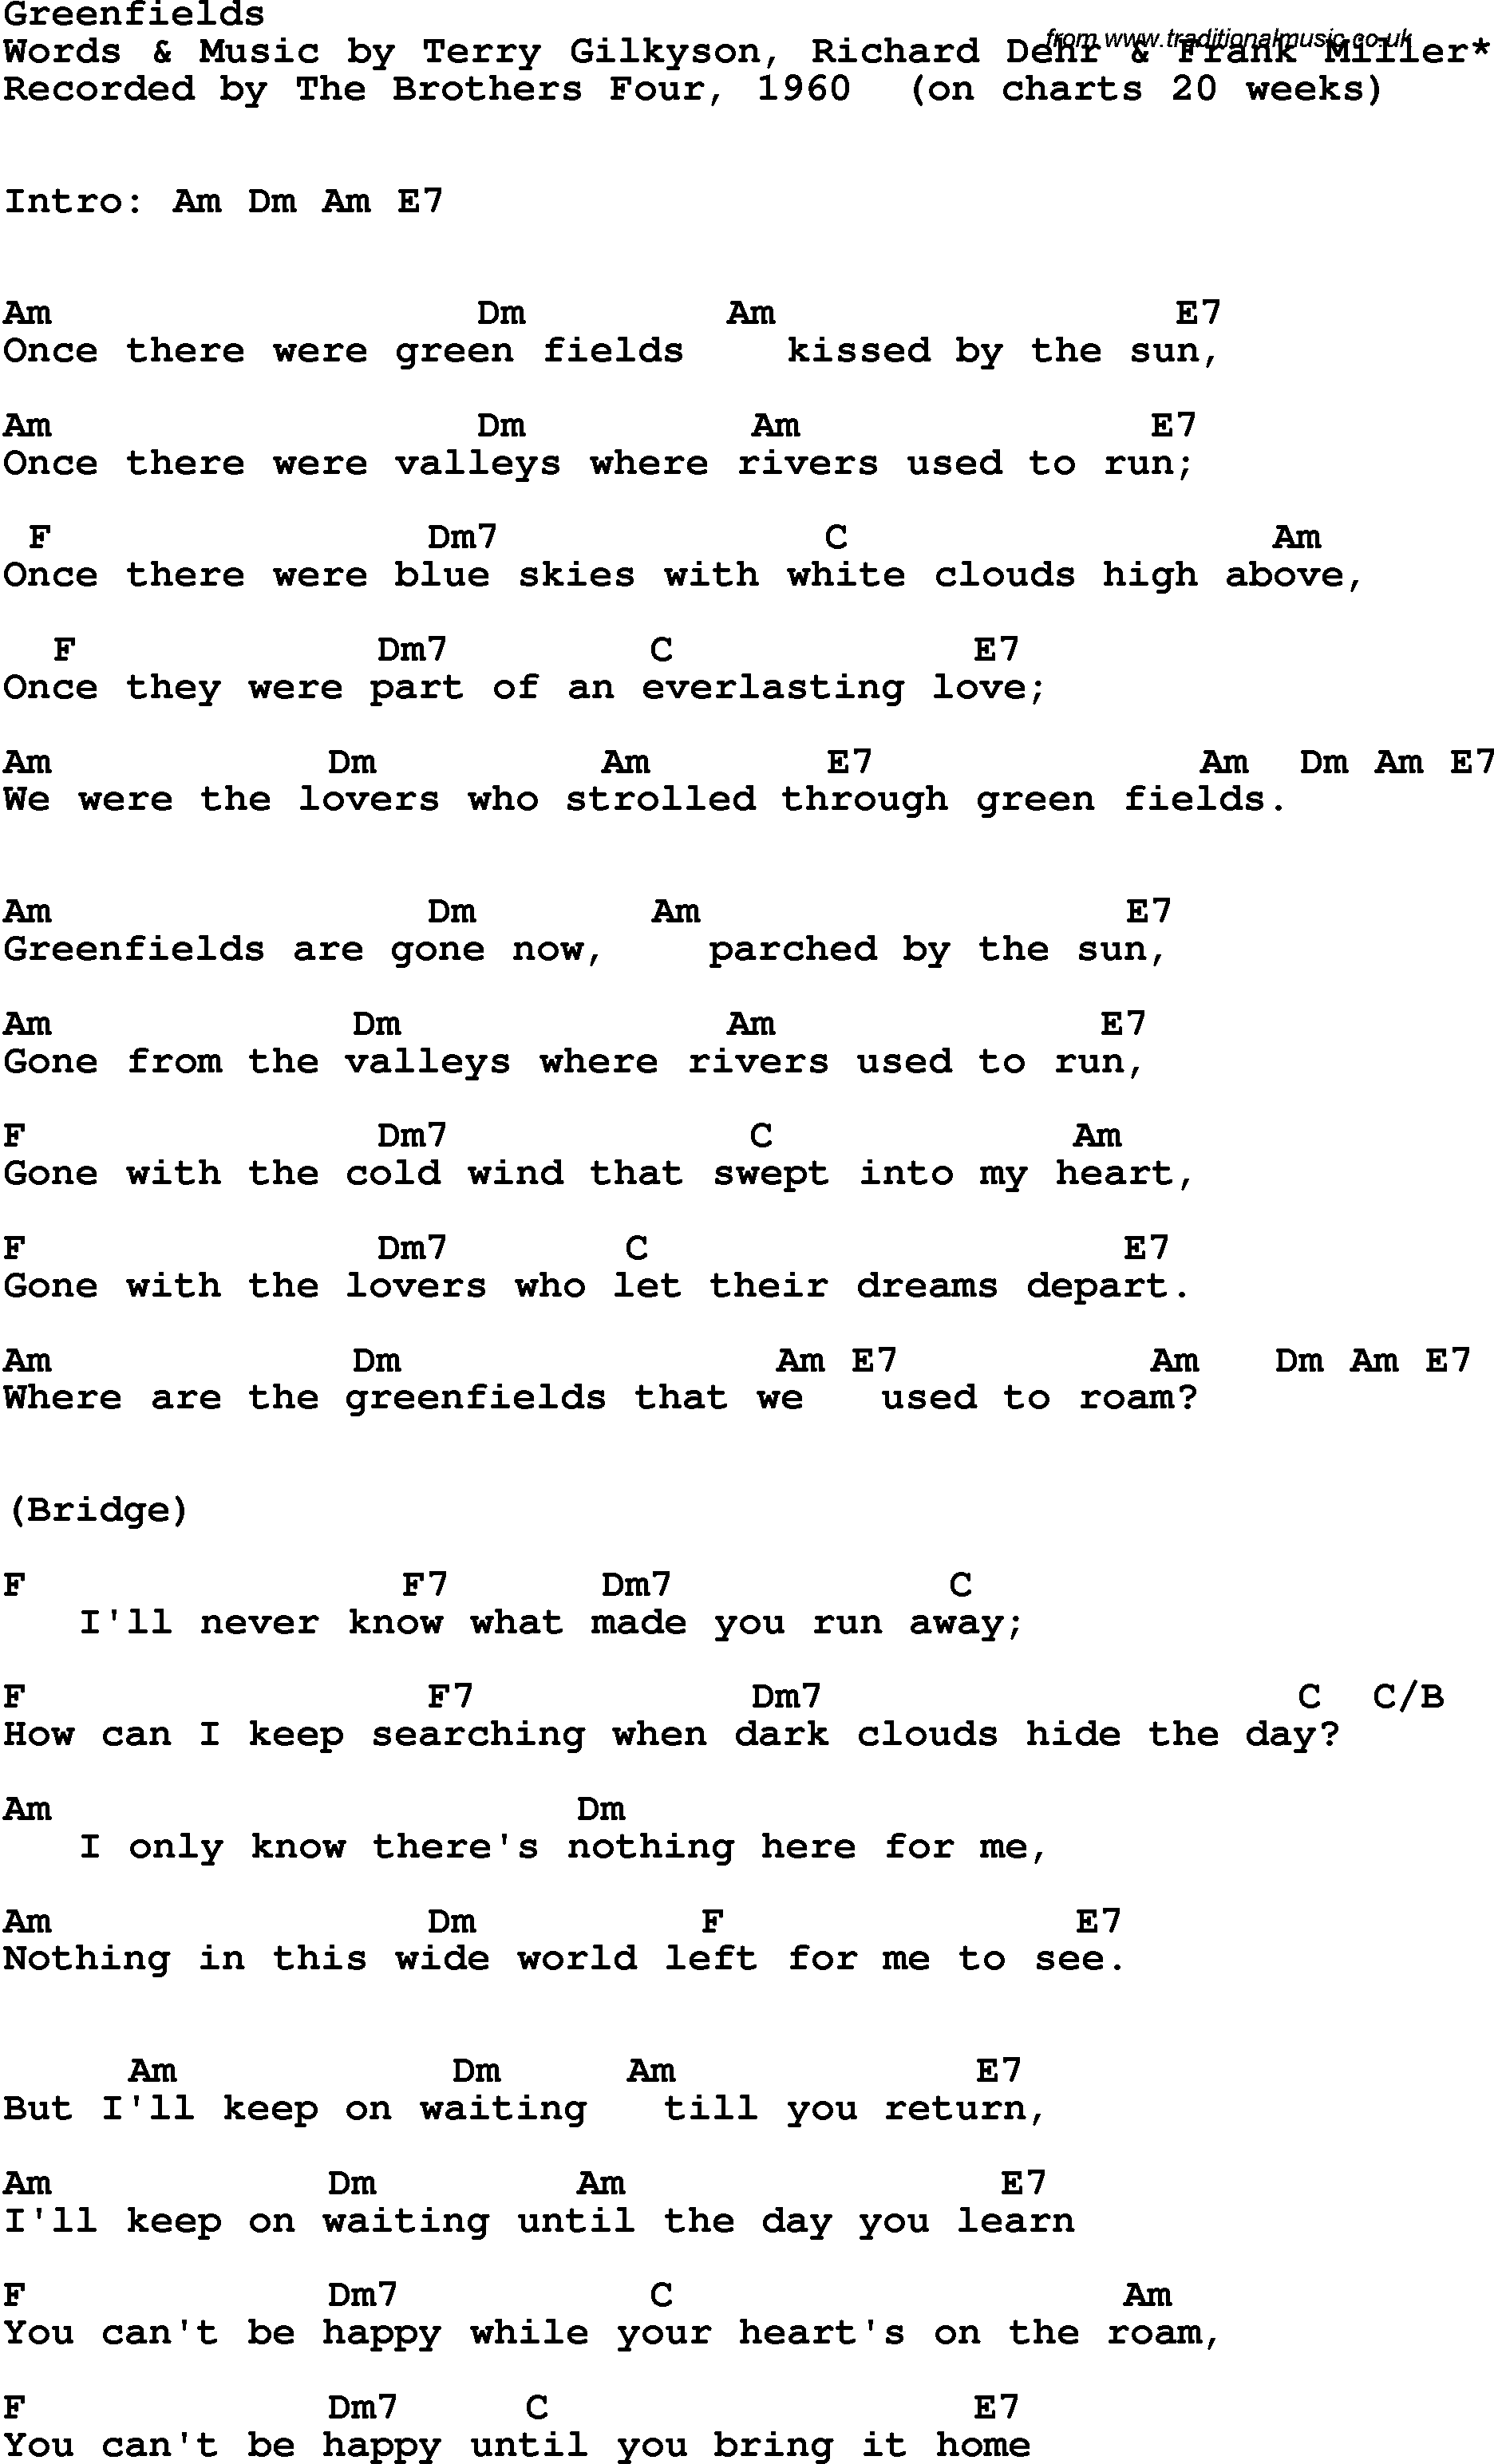 Song Lyrics With Guitar Chords For Greenfields The Brothers Four 1960